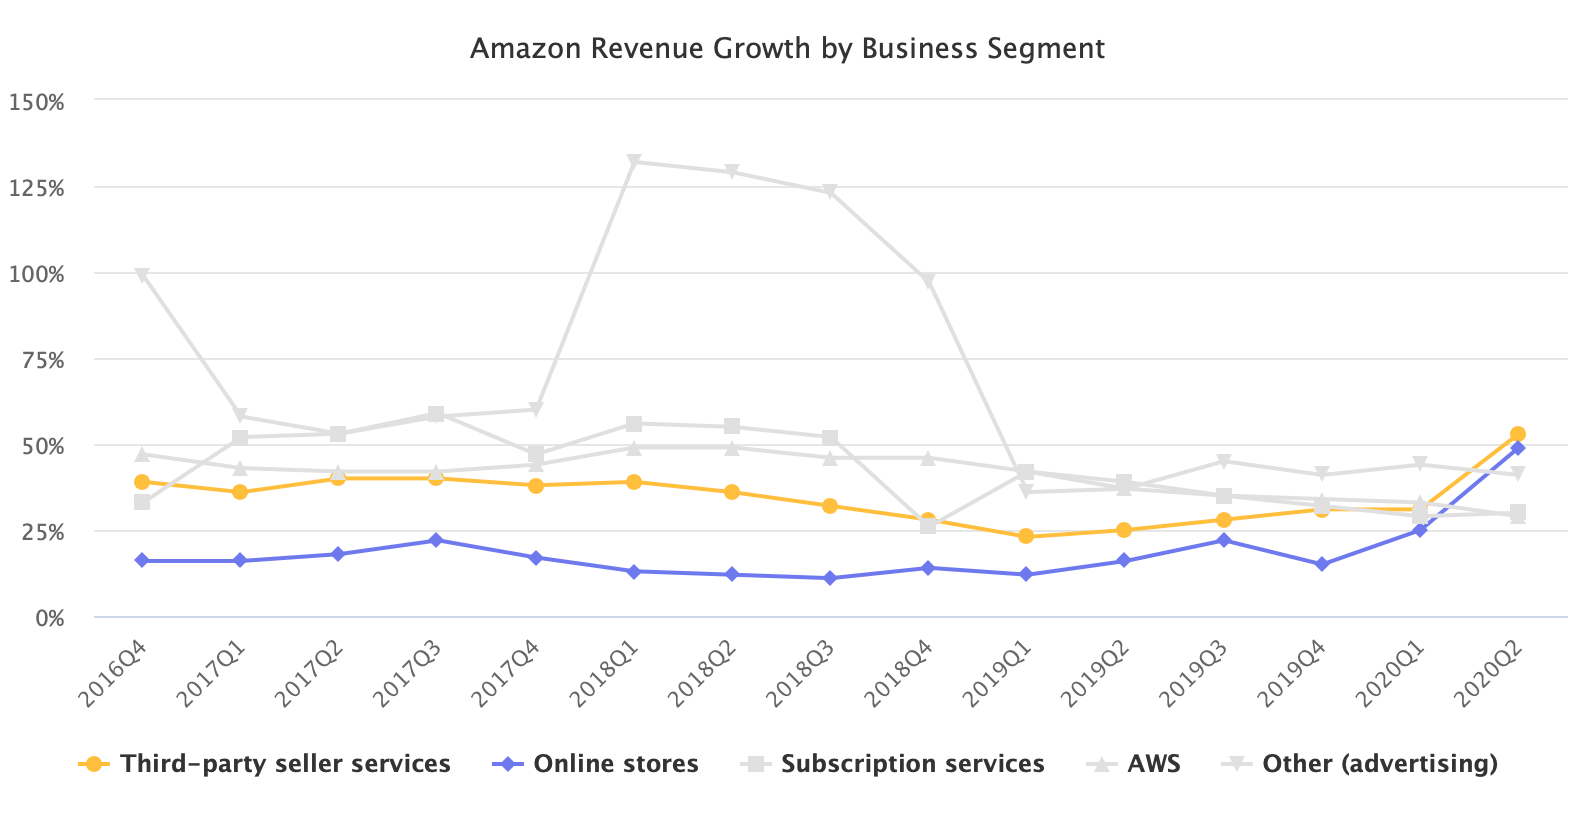 Amazon Revenue Growth by Business Segment